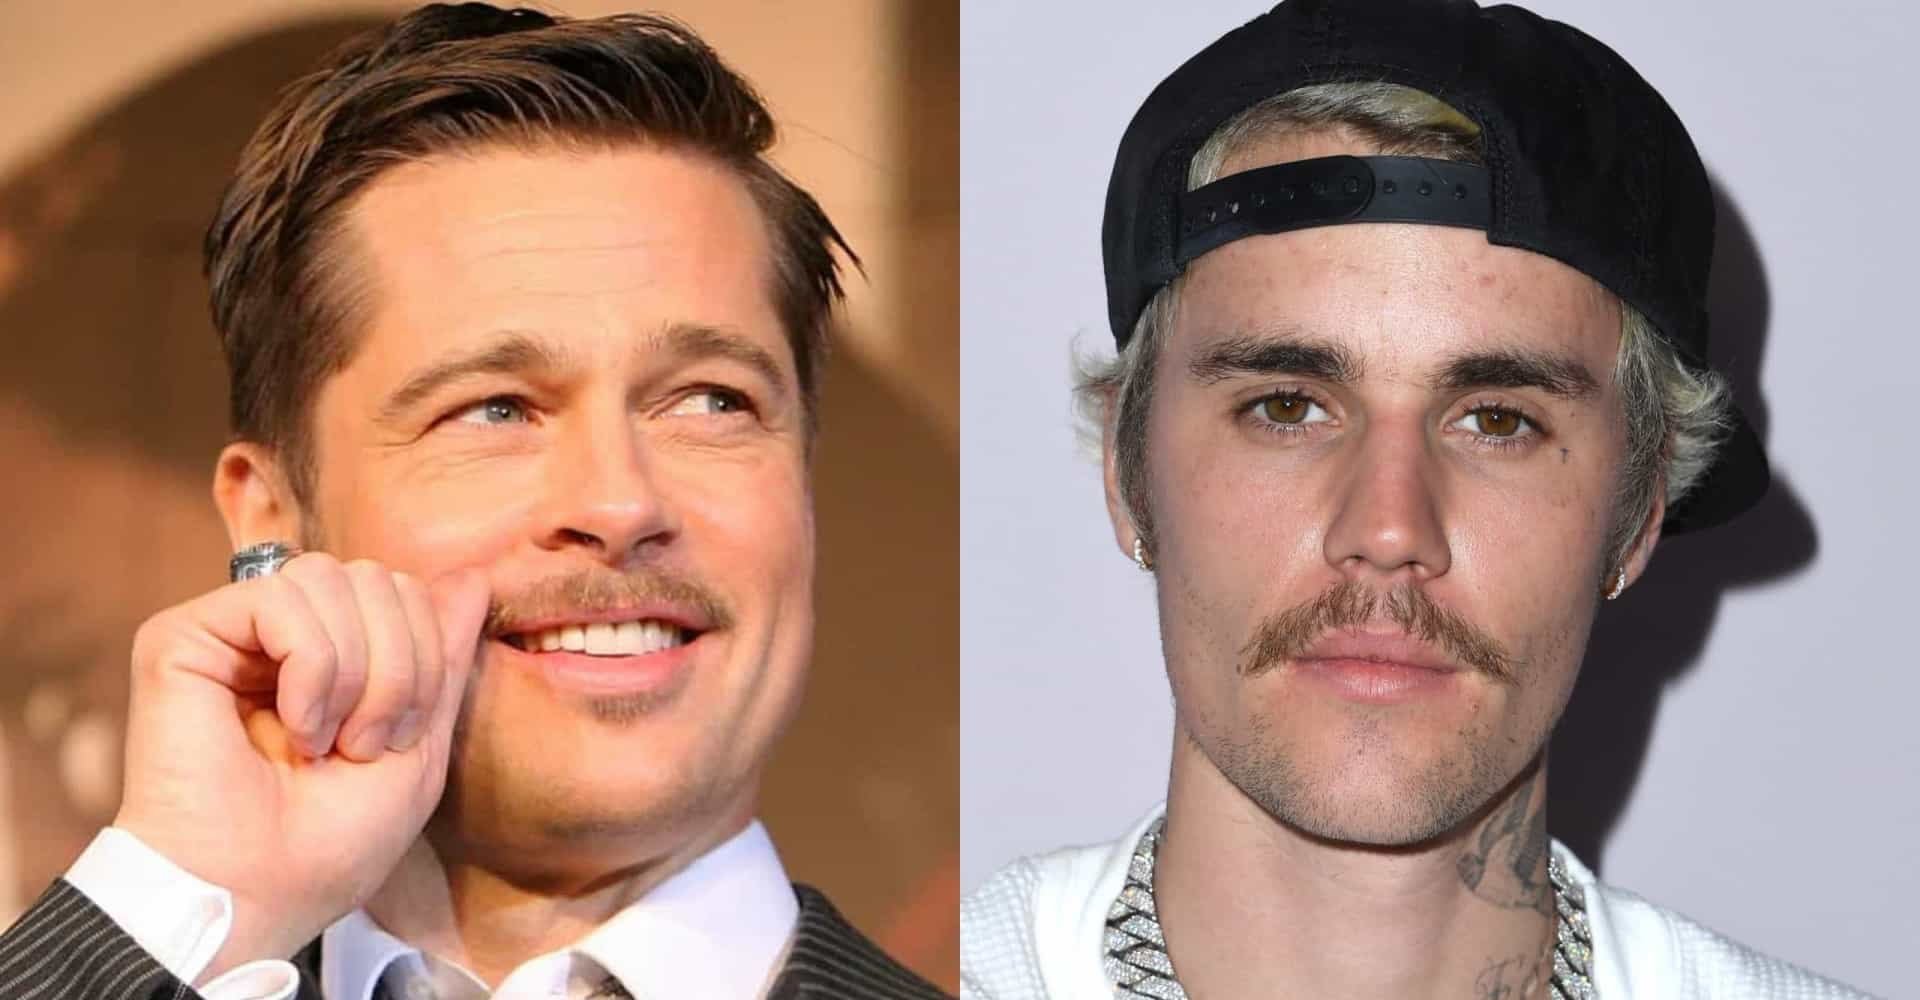 These are Hollywood's best and worst mustaches